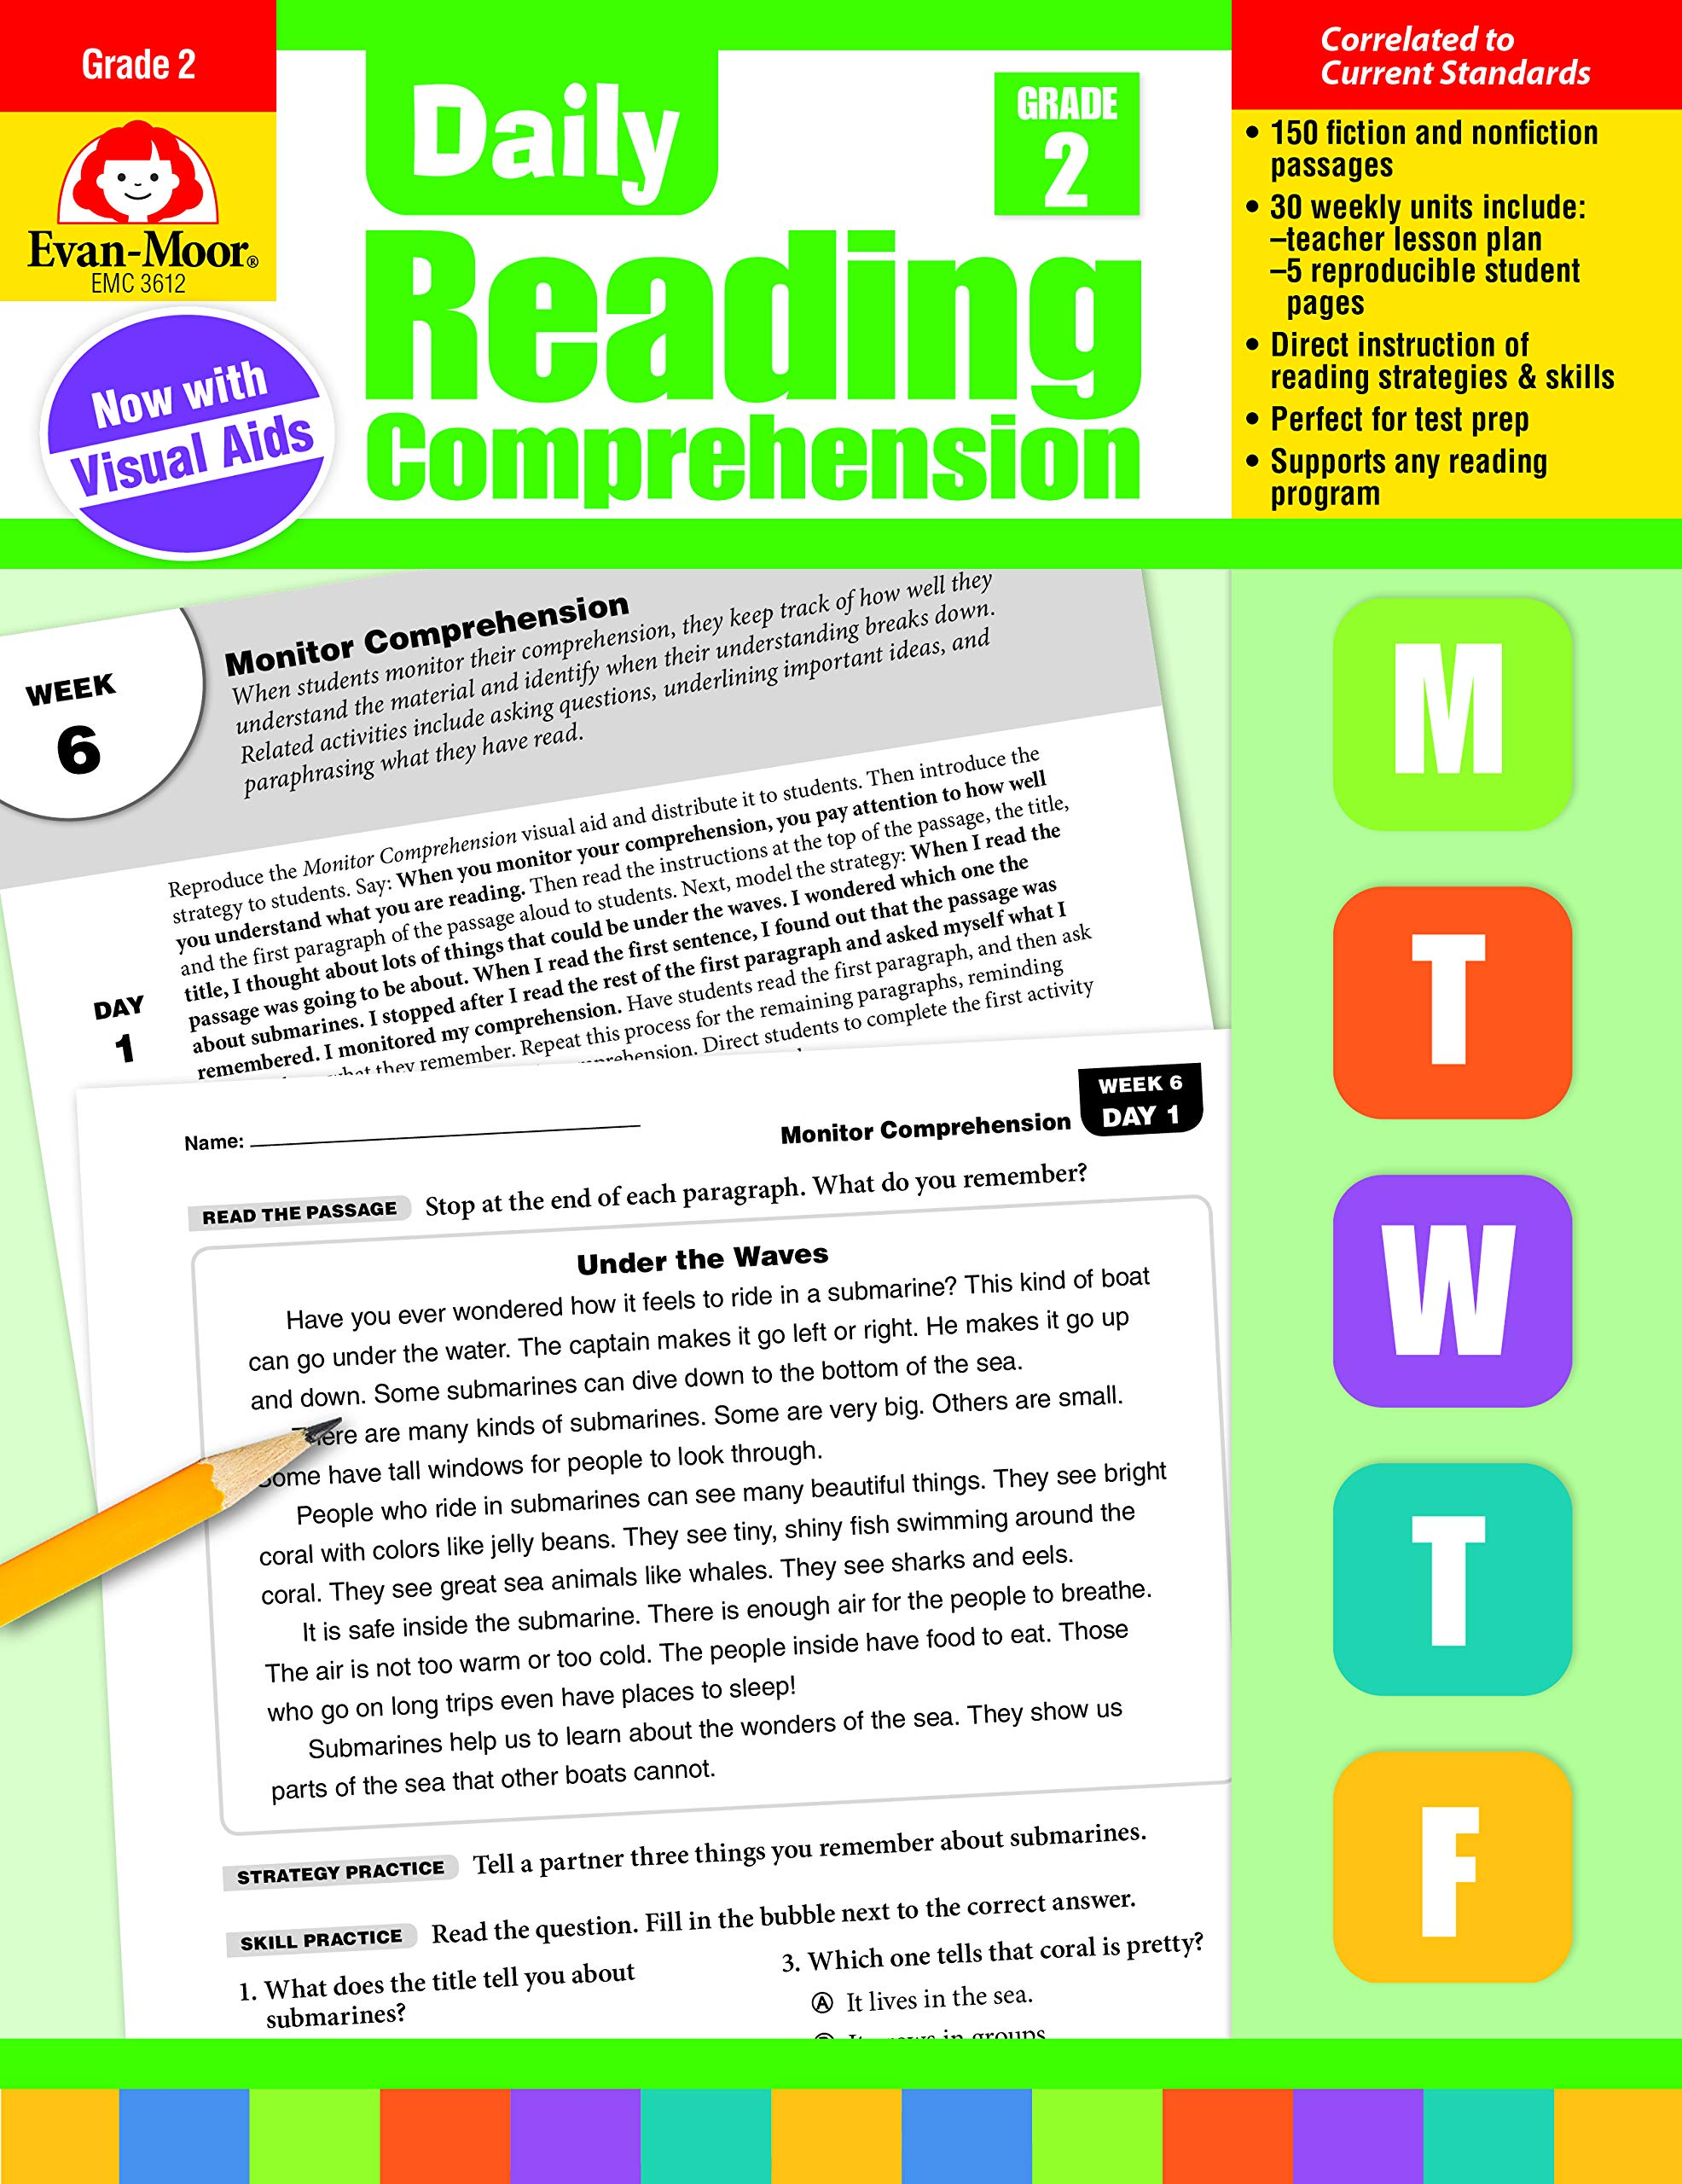 - Amazon.com: Daily Reading Comprehension, Grade 2 (9781629384757